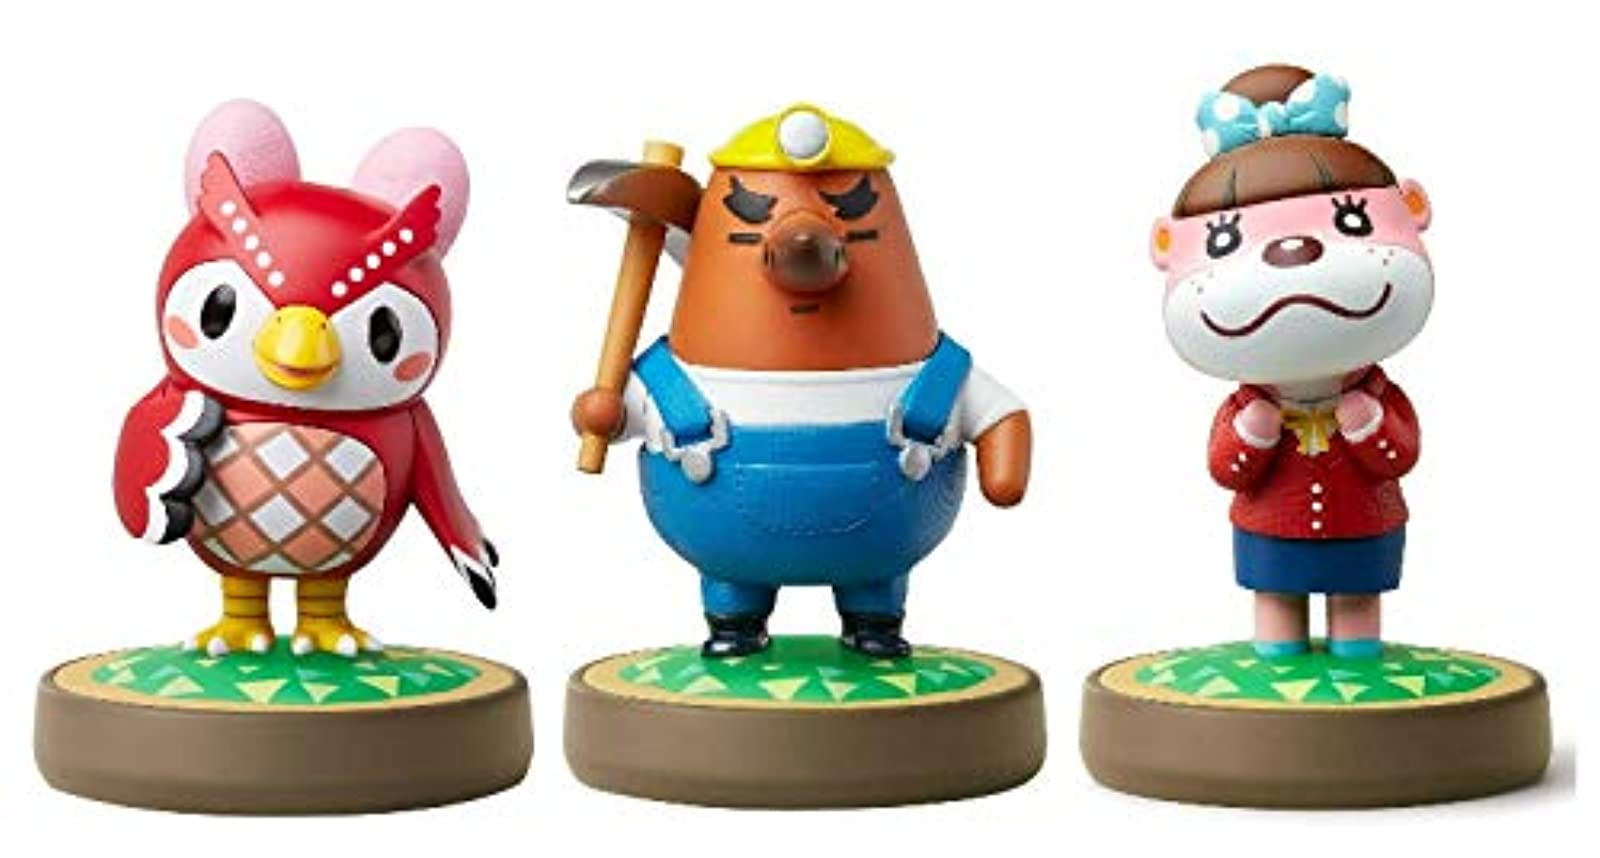 Celeste Lottie Amiibo Animal Crossing Series For Nintendo Switch 3 Pack Figure